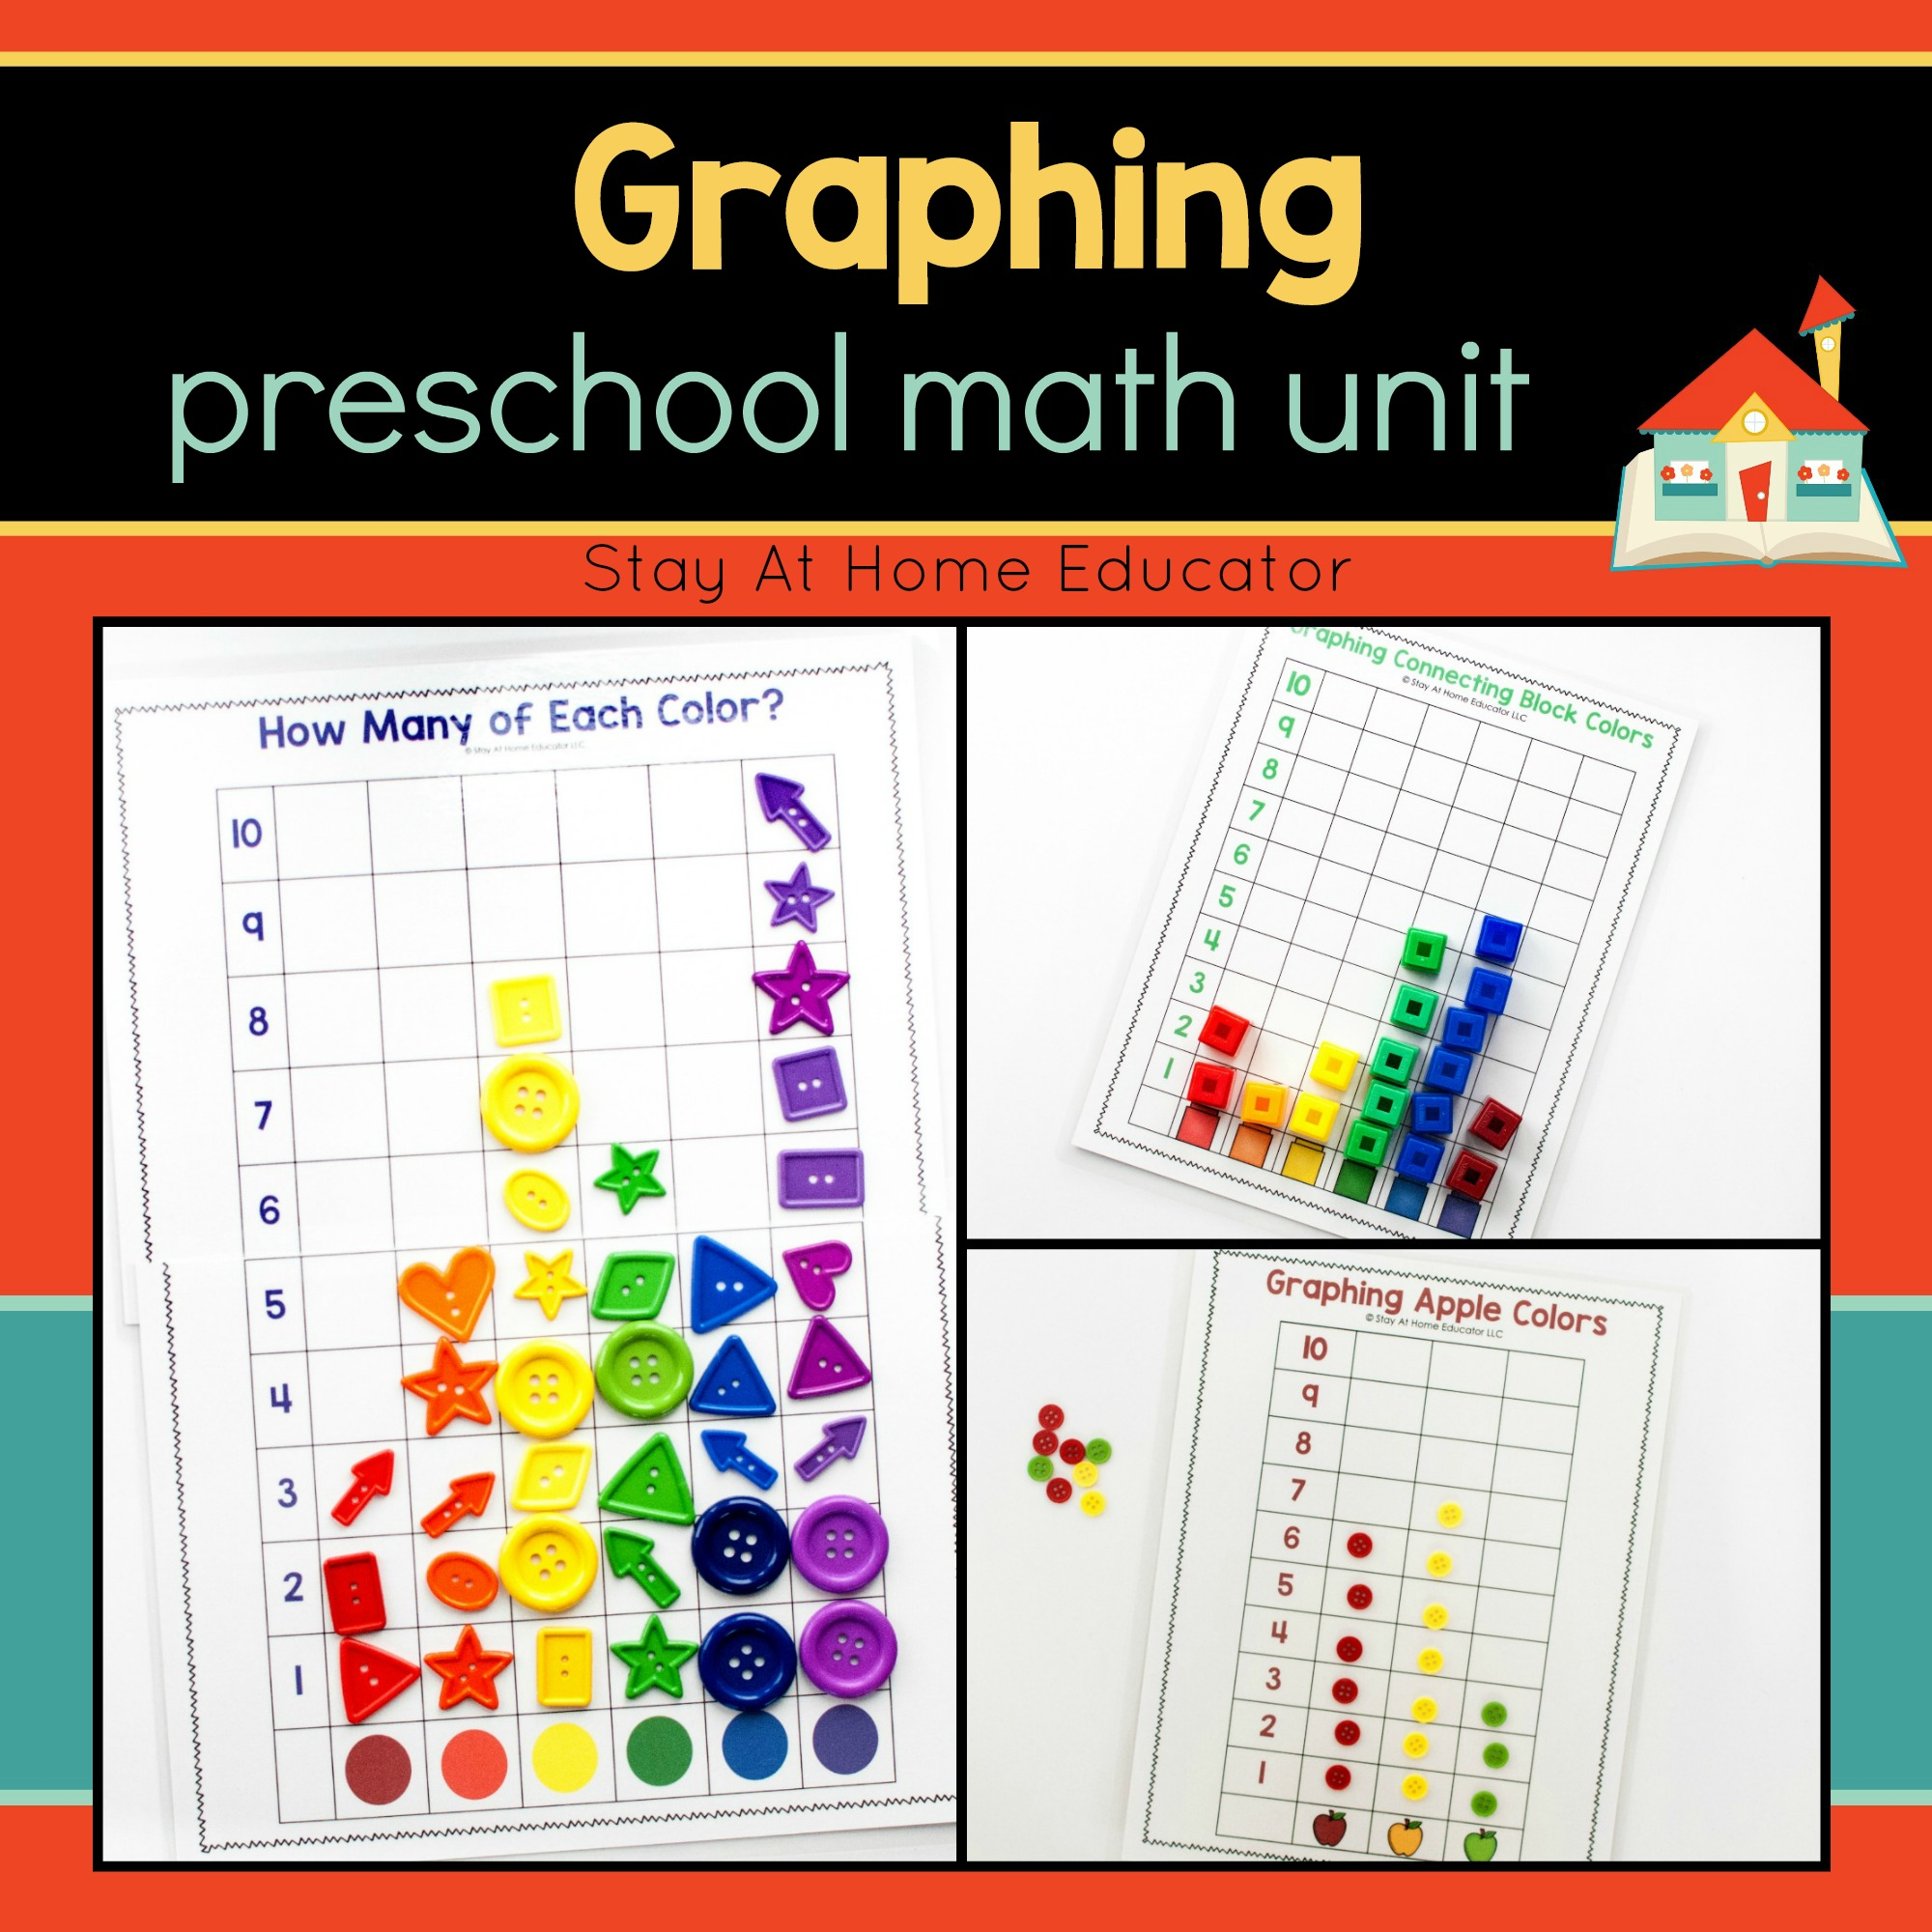 Teach Preschool Math Activities With Preschool Math Curriculum